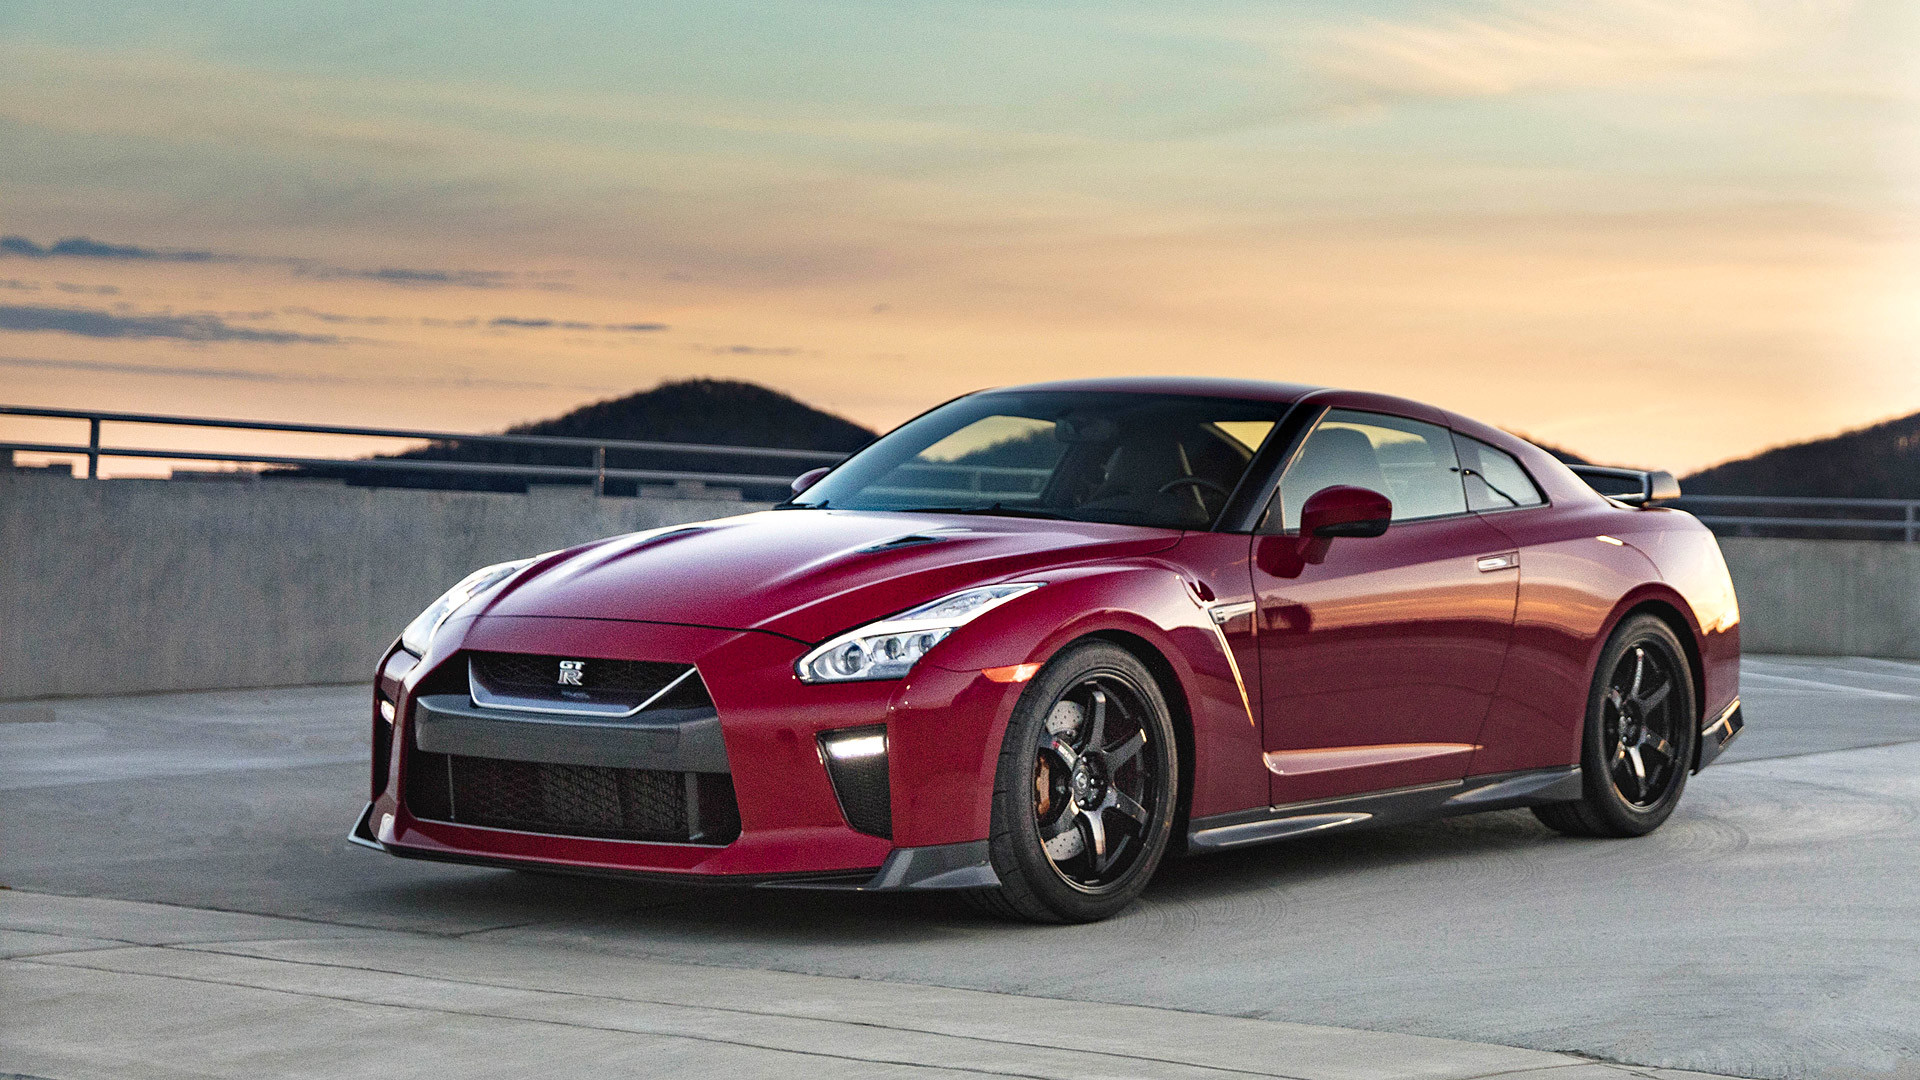 Res: 1920x1080, 2017 Nissan GT-R Track Edition picture